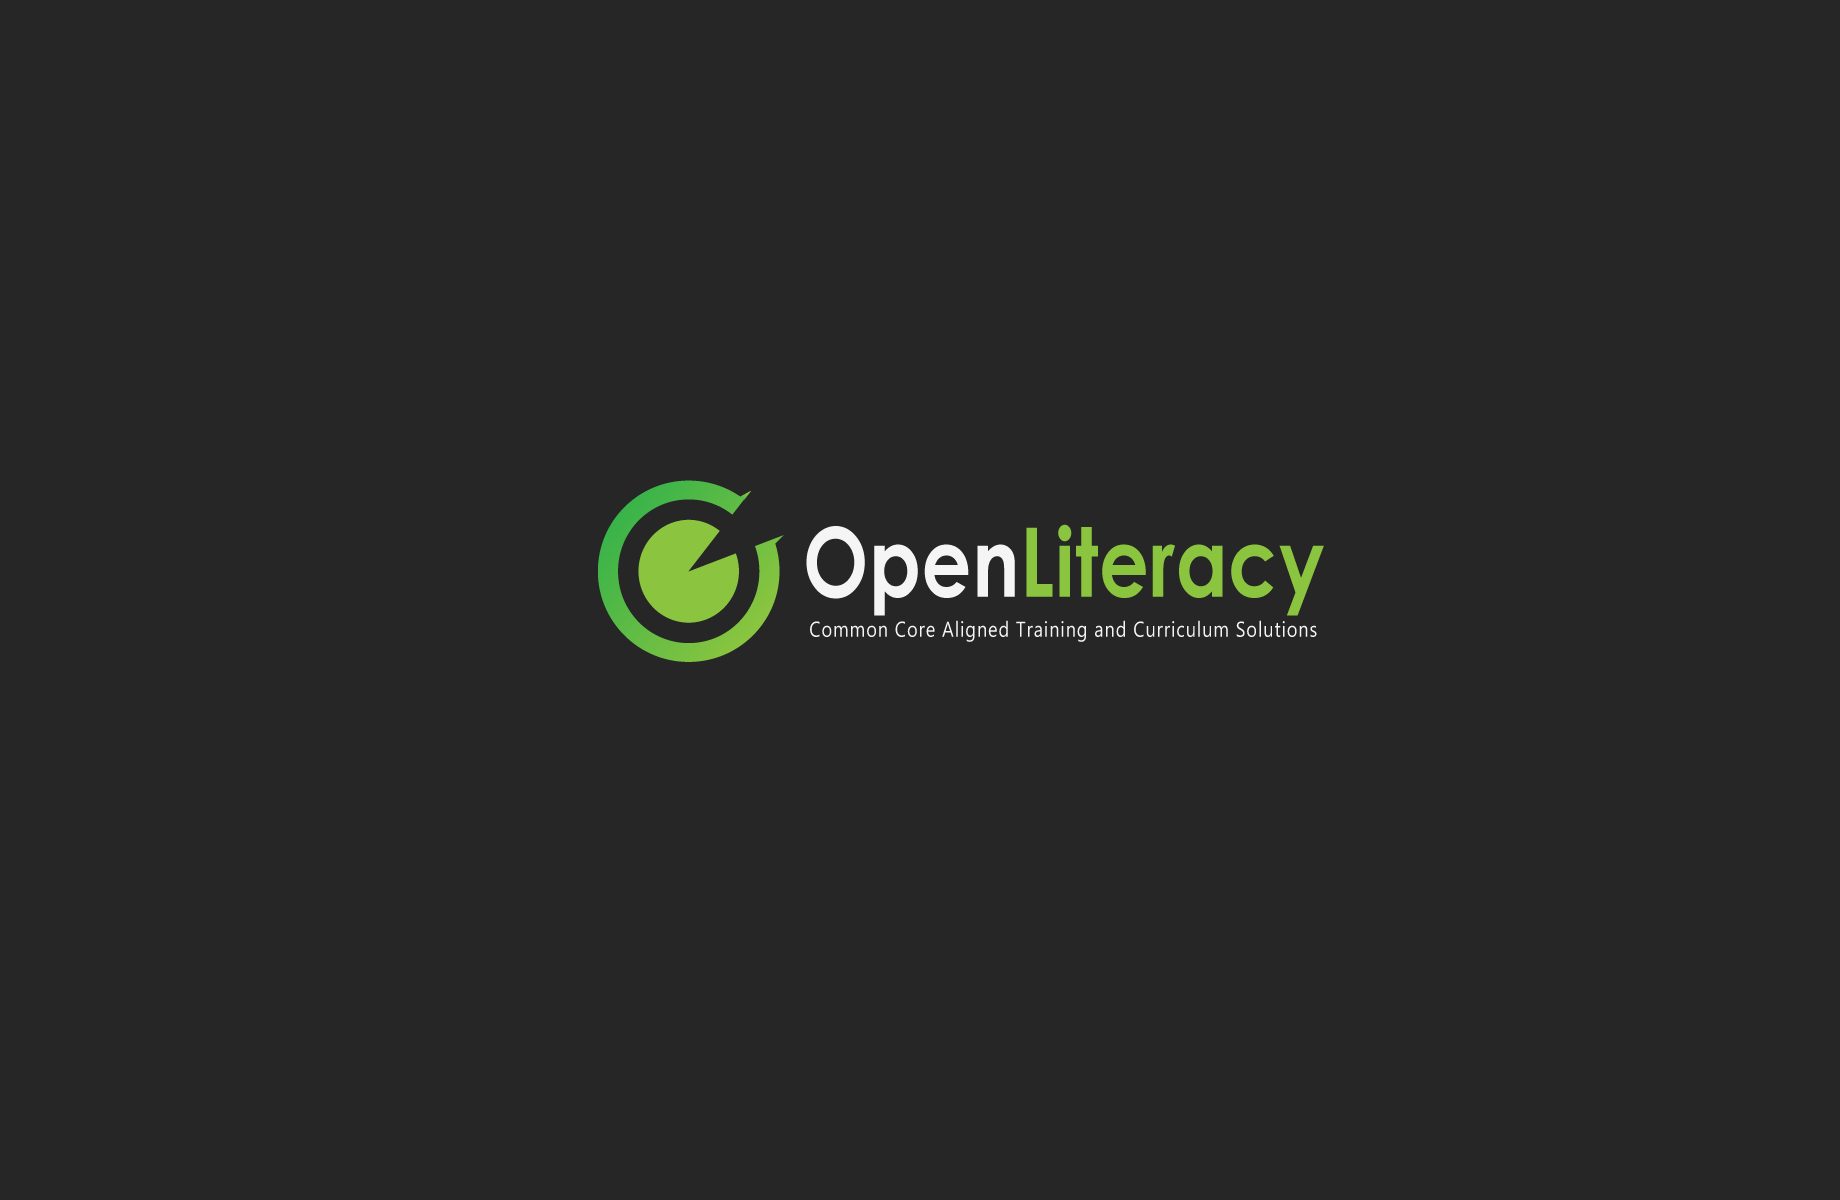 Logo Design by Jan Chua - Entry No. 87 in the Logo Design Contest Inspiring Logo Design for OpenLiteracy.